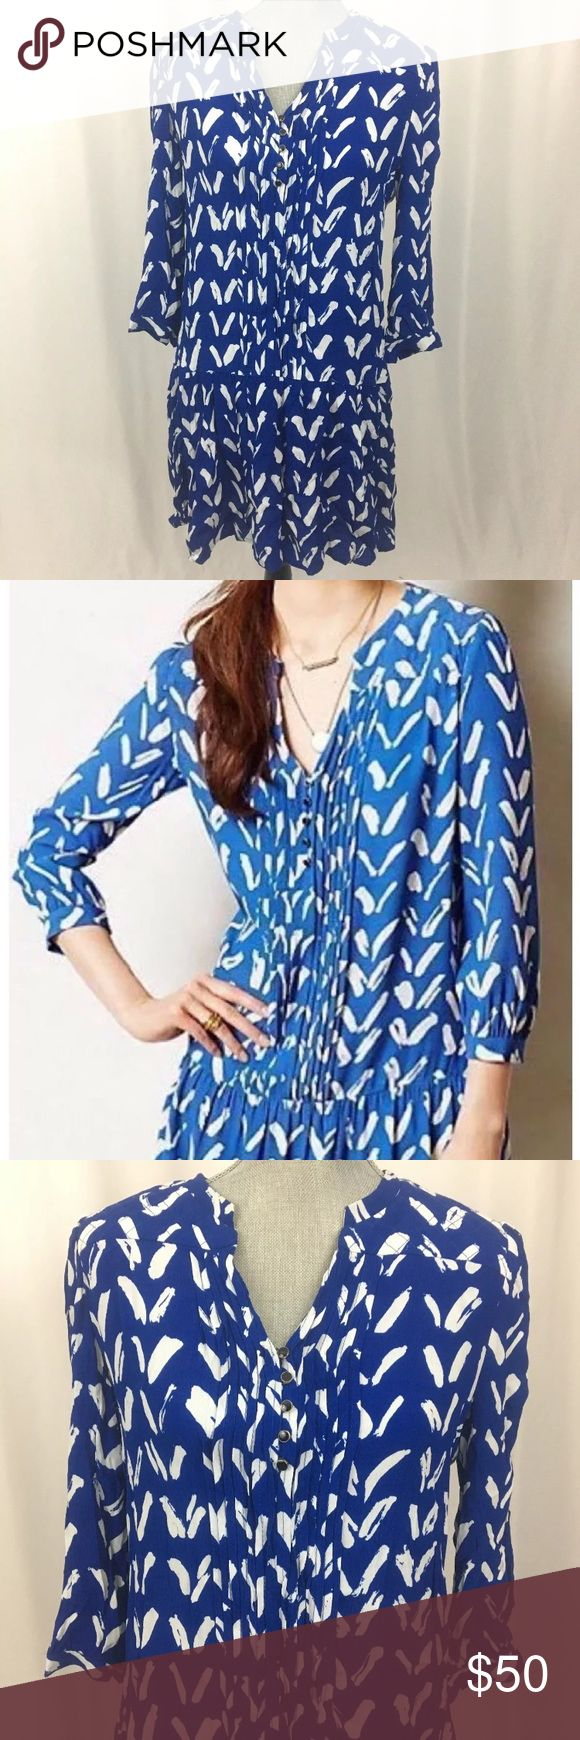 "MAEVE Anthropologie CARAVANE Blue Chevron Dress MAEVE Anthropologie CARAVANE 3/4 Sleeve Blue White Chevron Drop Waist Tunic Dress  Size: Women's Size Small, S Excellent, pre-owned condition-no noticeable flaws or imperfections to note, GREAT condition! Retails for $128 Made of 55% Viscose, 45% Rayon Measurements-- Length (top of neck to bottom hem): 35"" Chest: 39"" Sleeve length (top of shoulder to sleeve opening): 22.5"" Roll up 3/4 sleeves with button closure Pockets Anthropologie Dresses…"